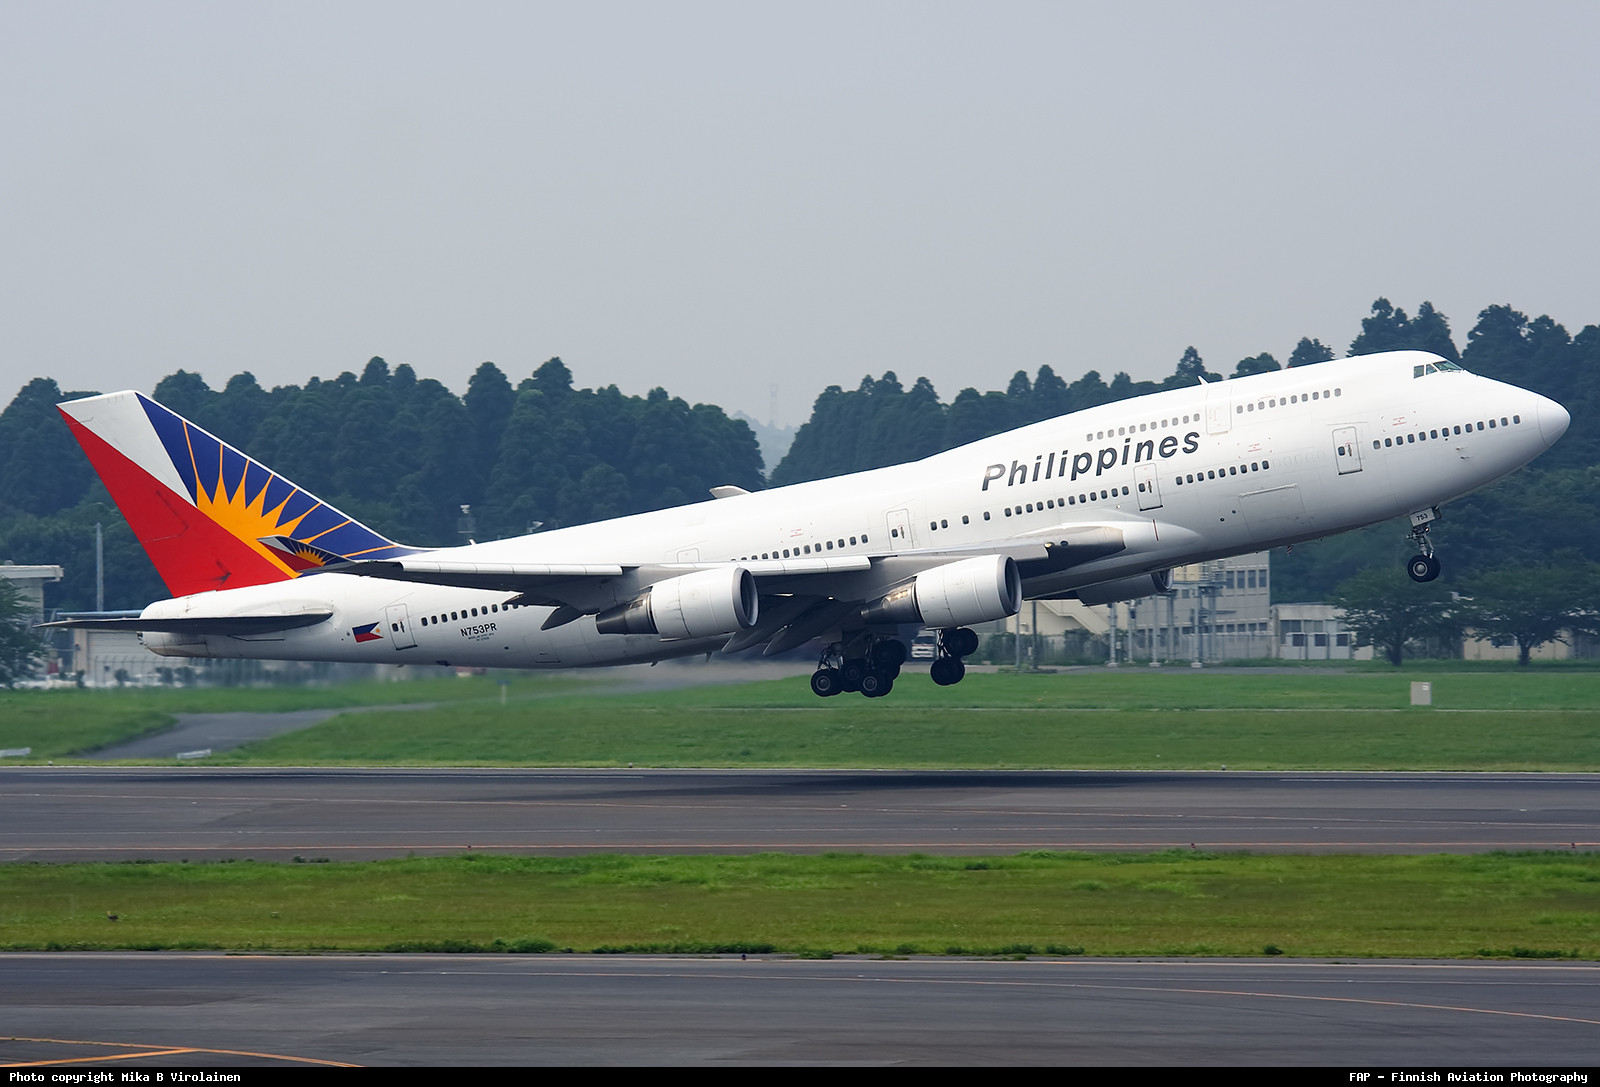 Download this Airline Philippine Airlines Aircraft Boeing Place Tokyo Narita picture